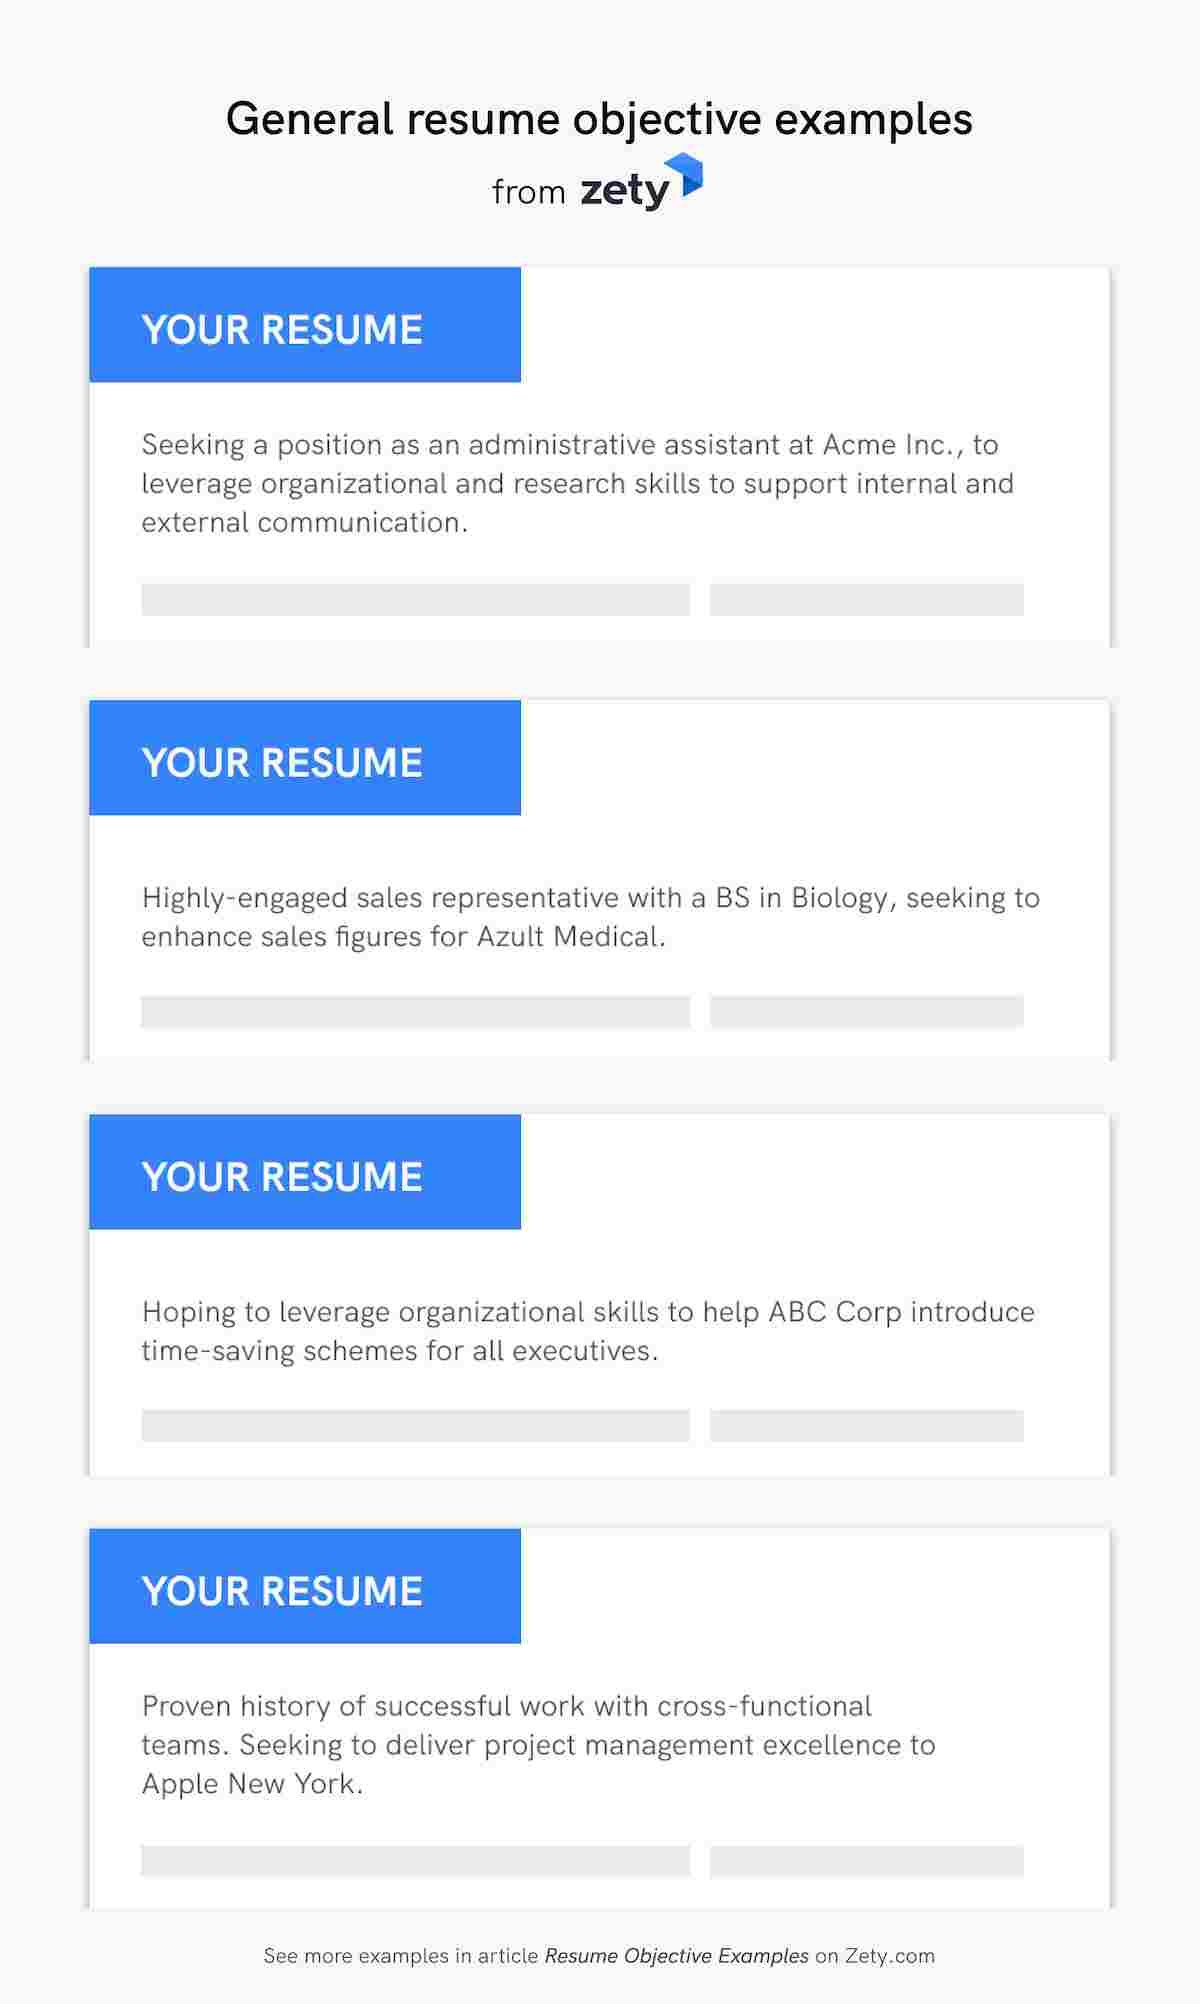 resume objective examples career objectives for all jobs medical field general best Resume Resume Objective Examples For Medical Field